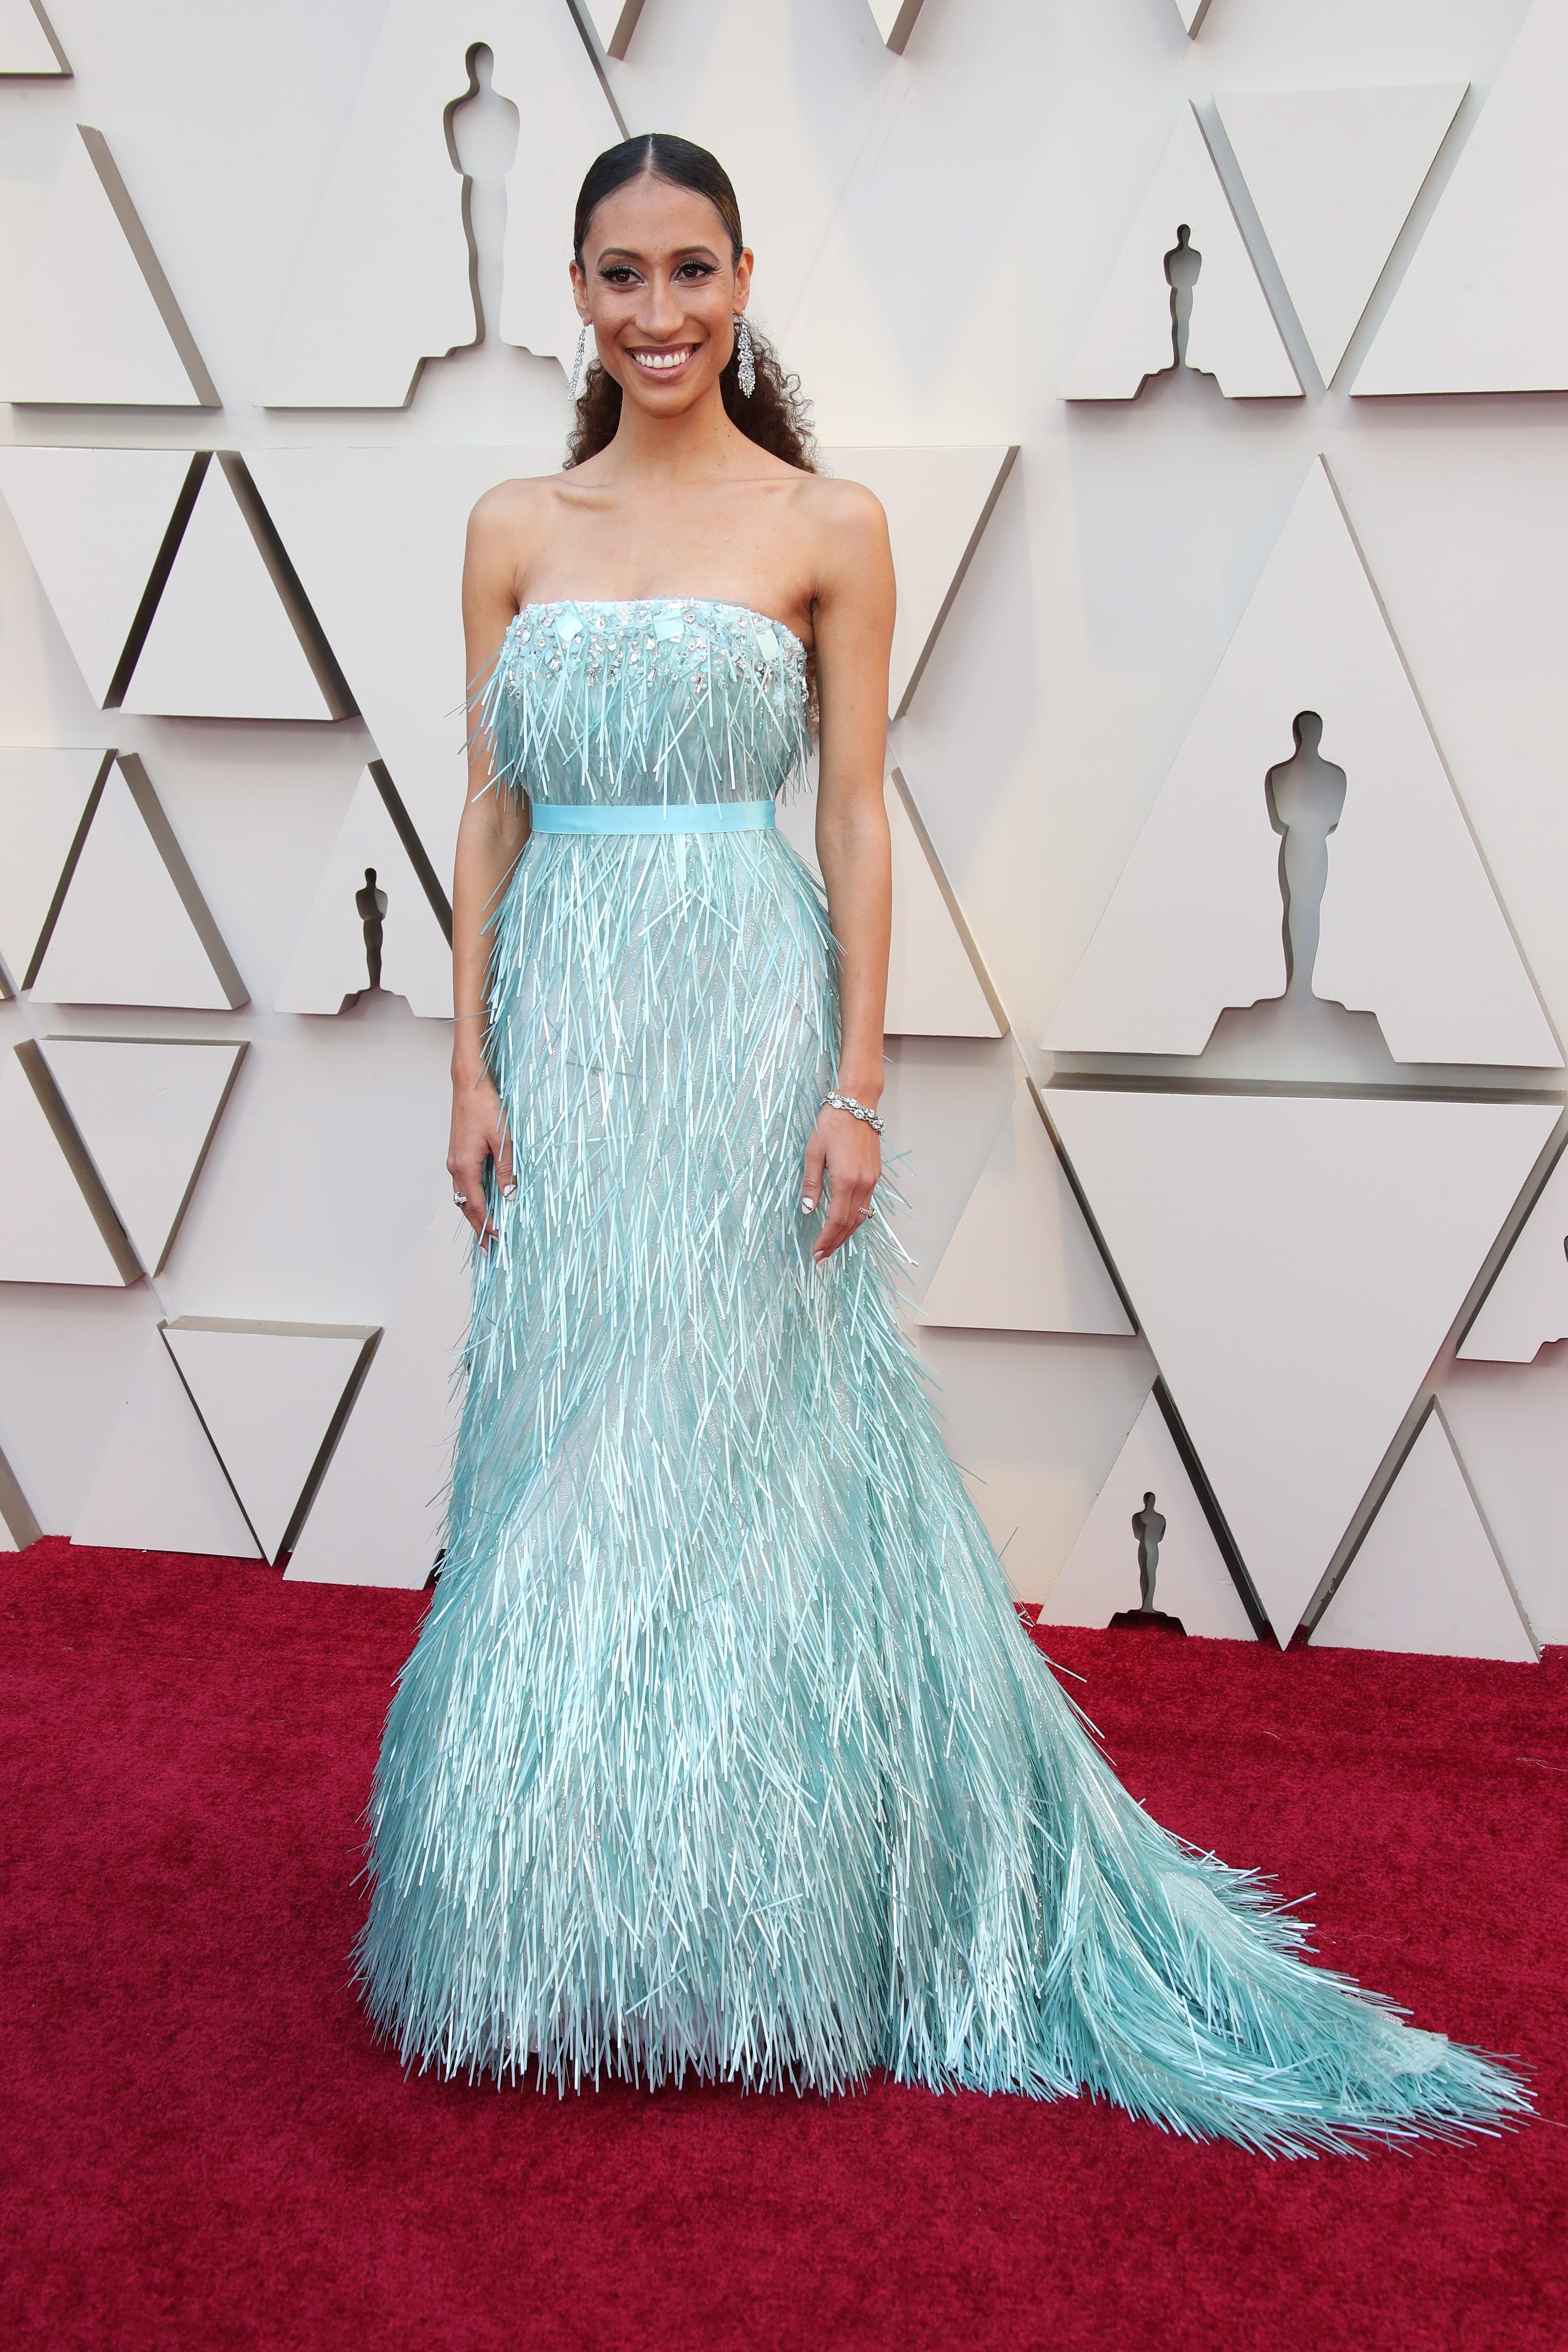 February 24, 2019; Los Angeles, CA, USA; Elaine Welteroth arrives at the 91st Academy Awards at the Dolby Theatre. Mandatory Credit: Dan MacMedan-USA TODAY NETWORK (Via OlyDrop)